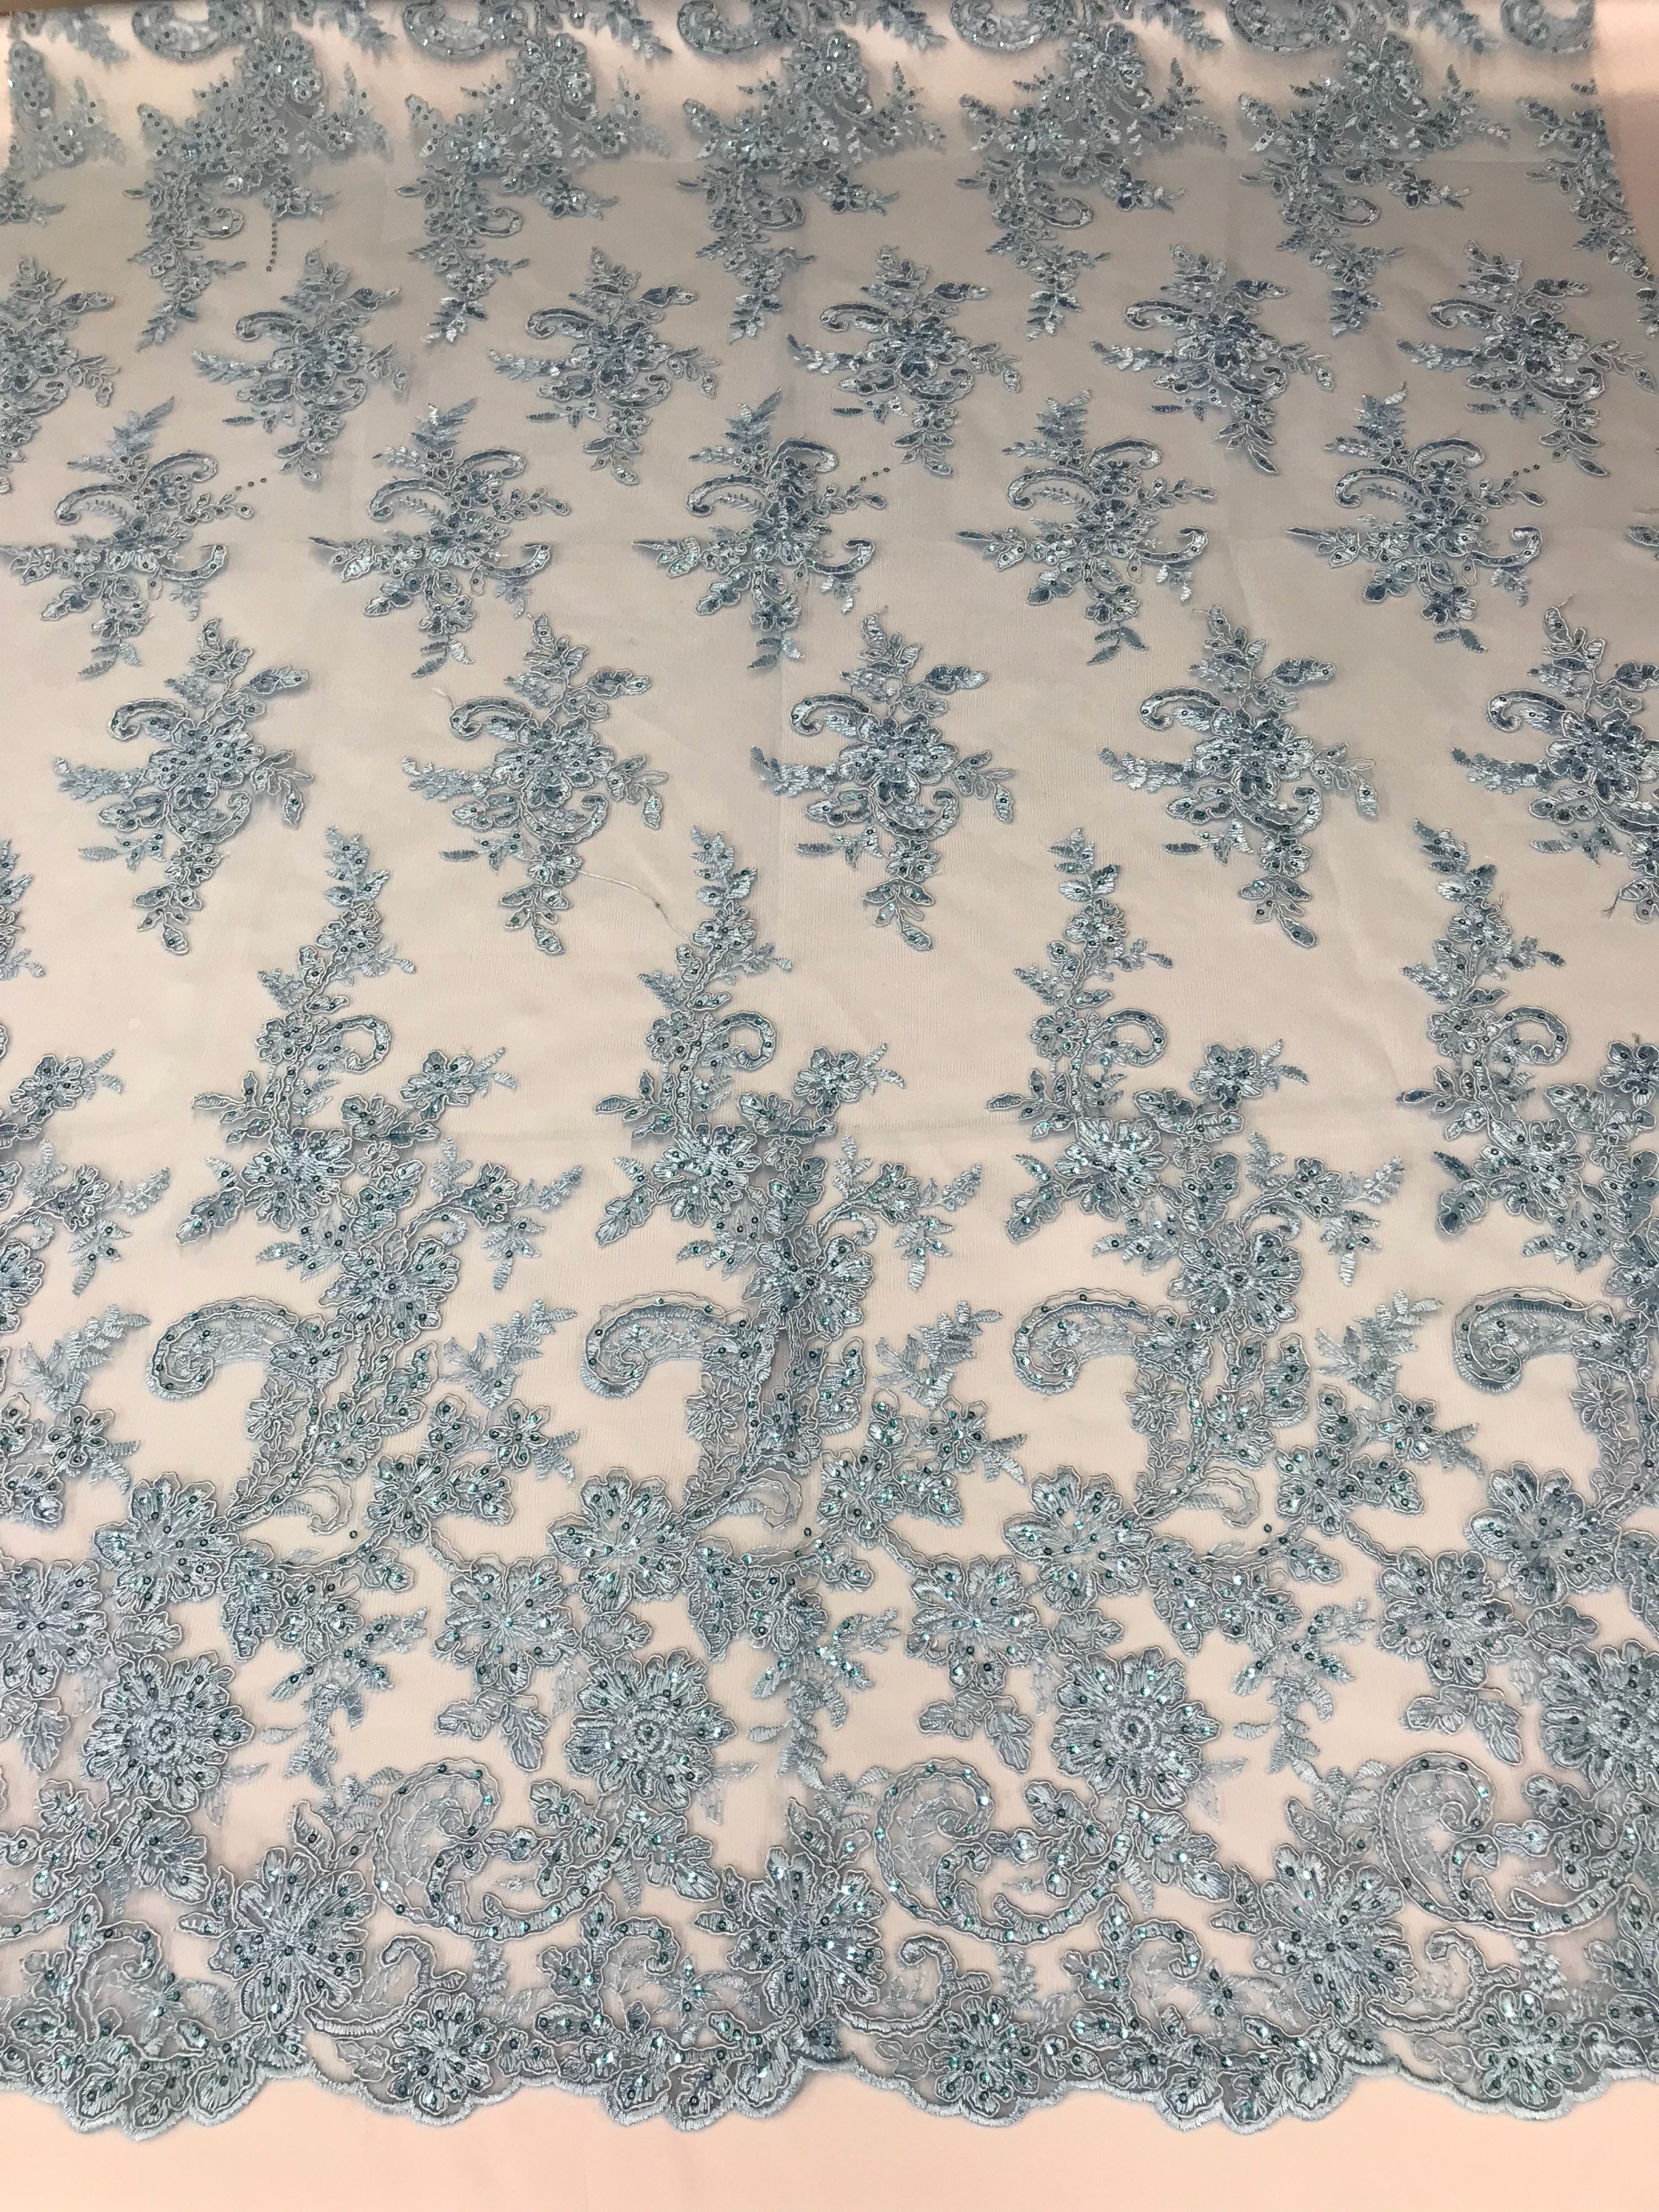 Mesh lace fabric Corded Flowers Embroidered Baby Blue by the yard.